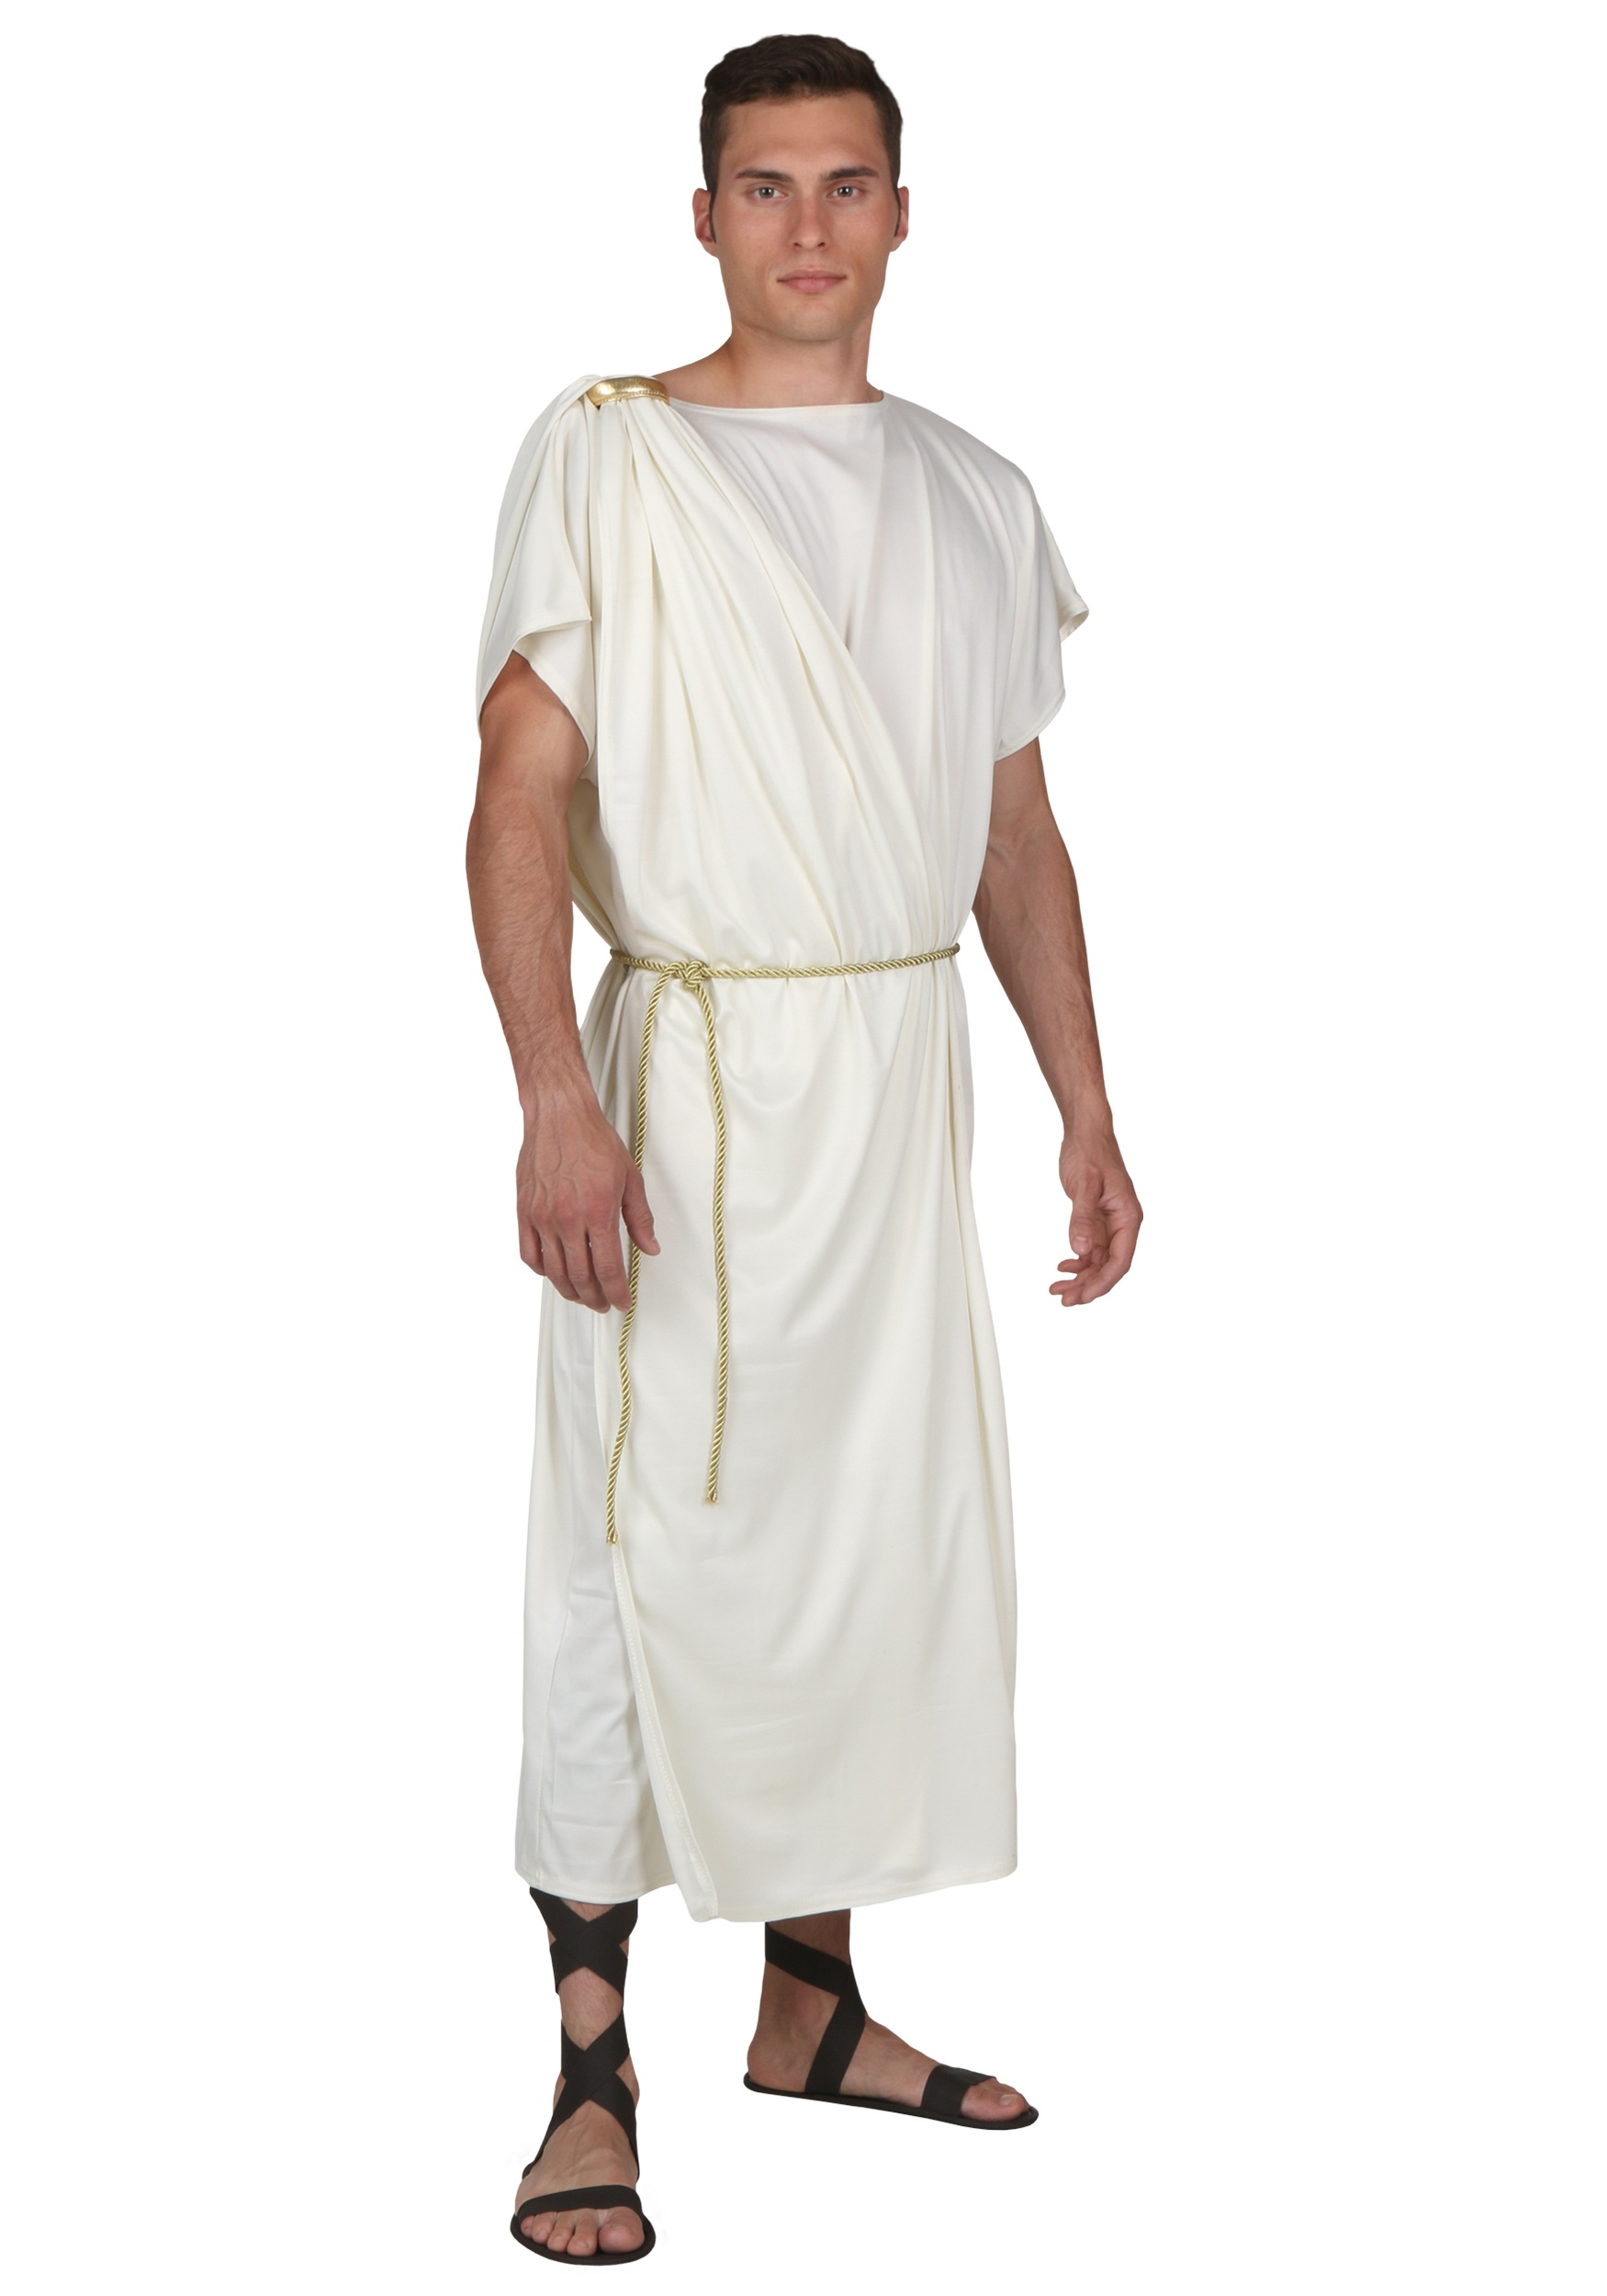 How To Make A Guy Toga Men's Toga